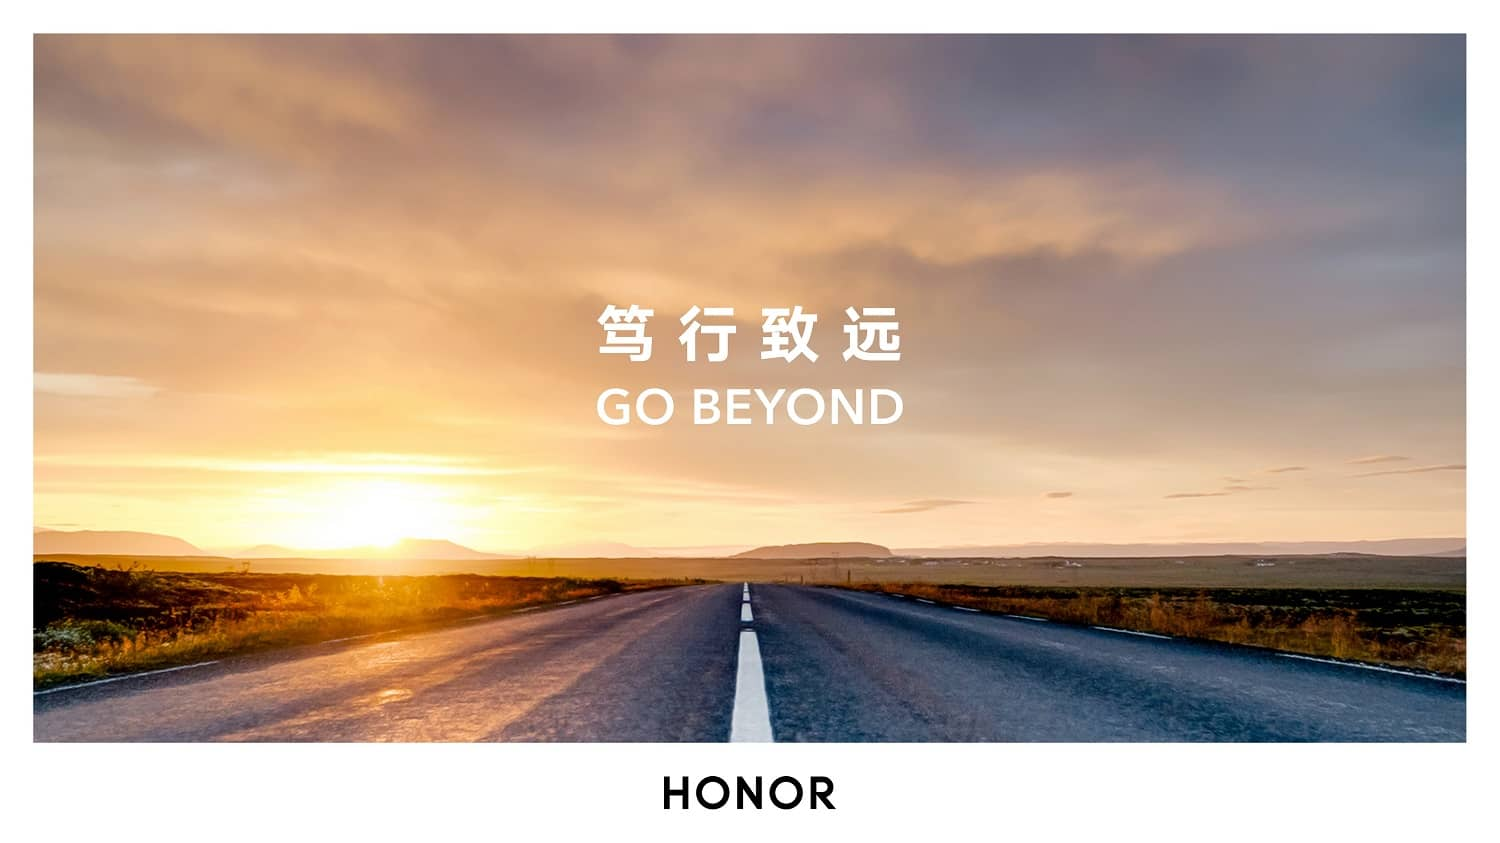 Who HONOR is right now?